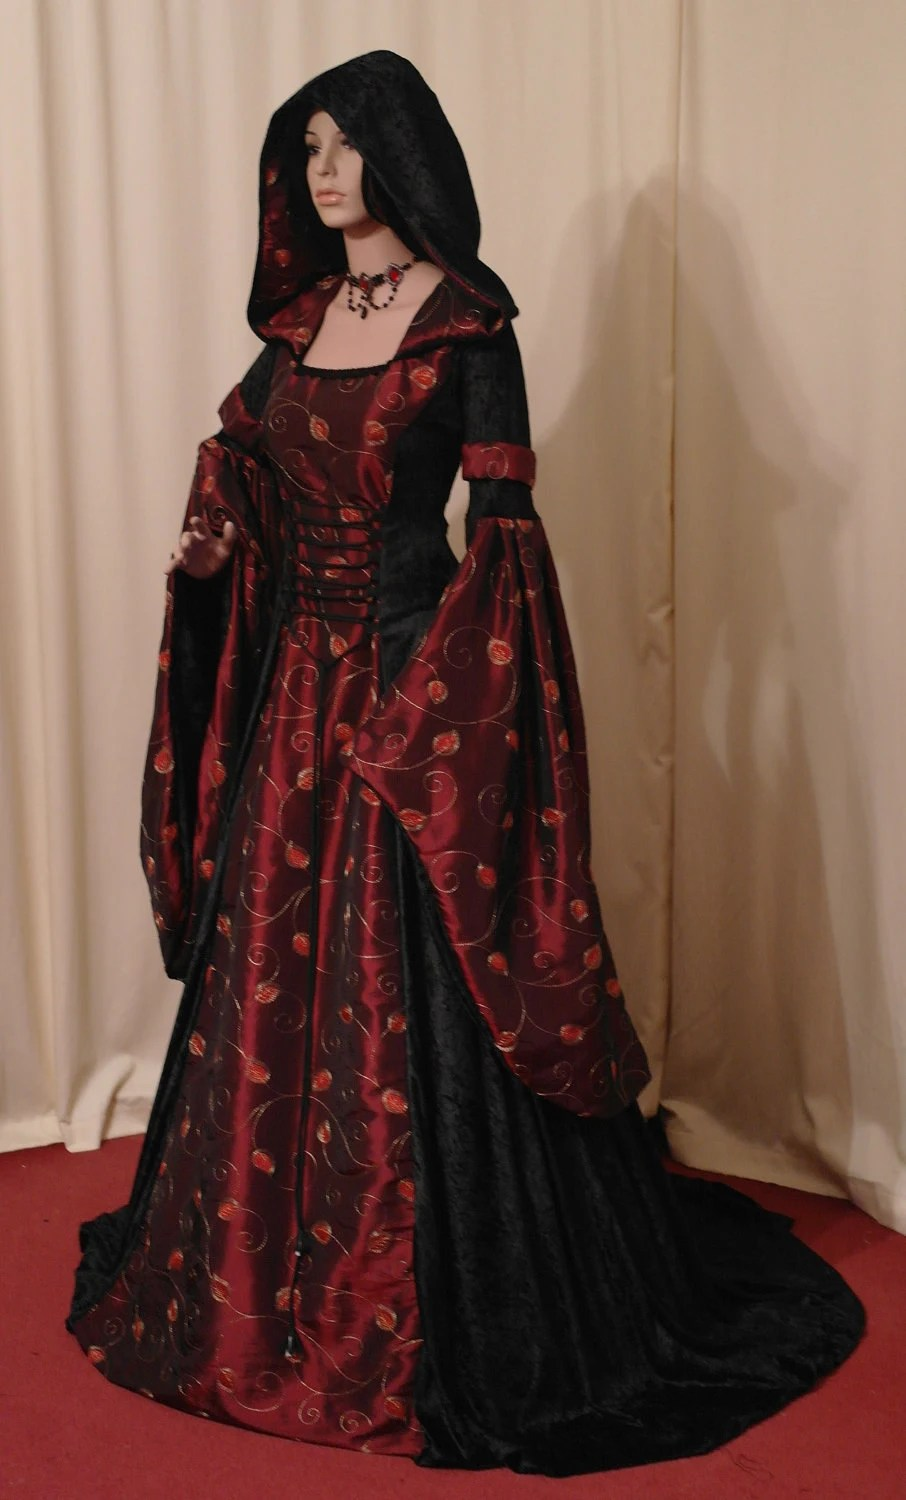 pagan wedding dresses Medieval Gothic Halloween hooded wedding dress very pretty I love the idea of a hooded wedding dress not black though